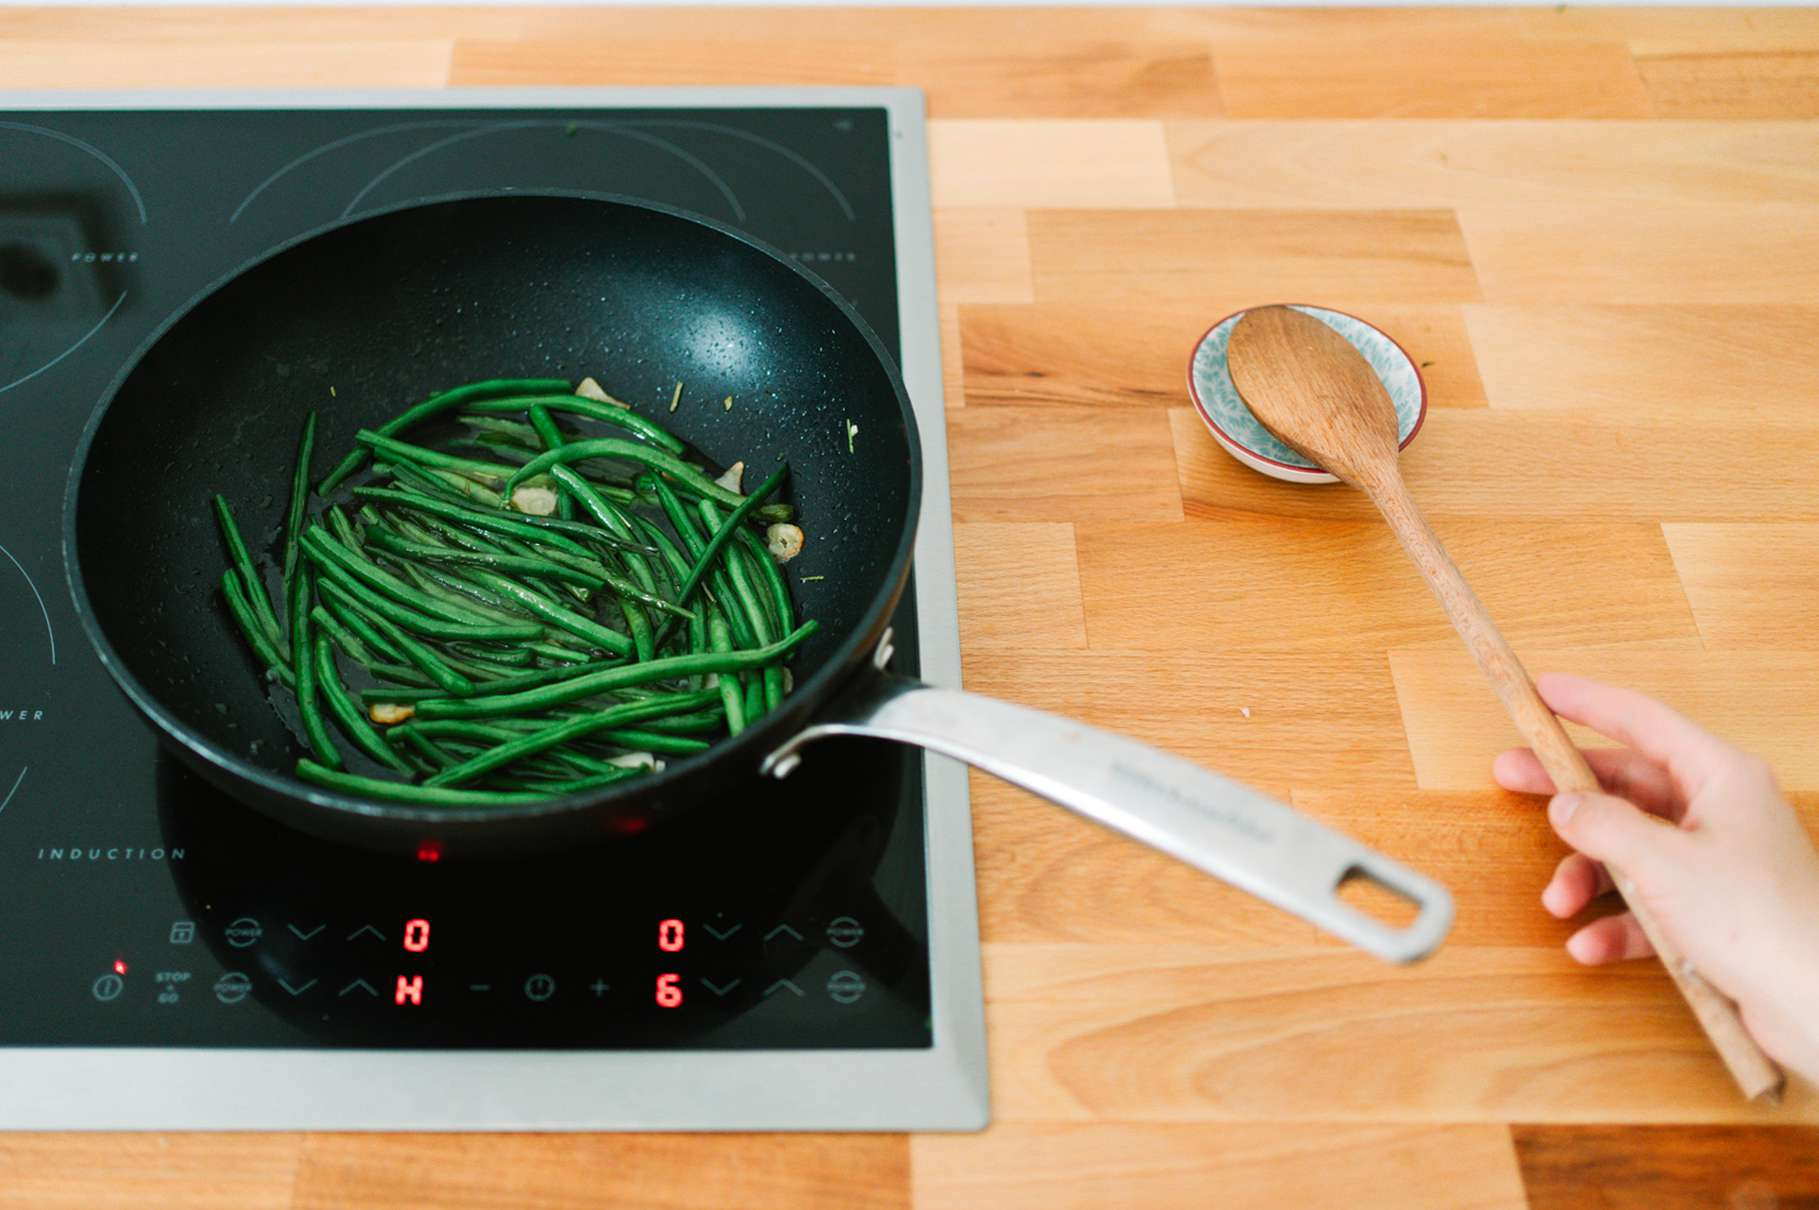 using a spoon rest instead of placing the utensil on the stove top